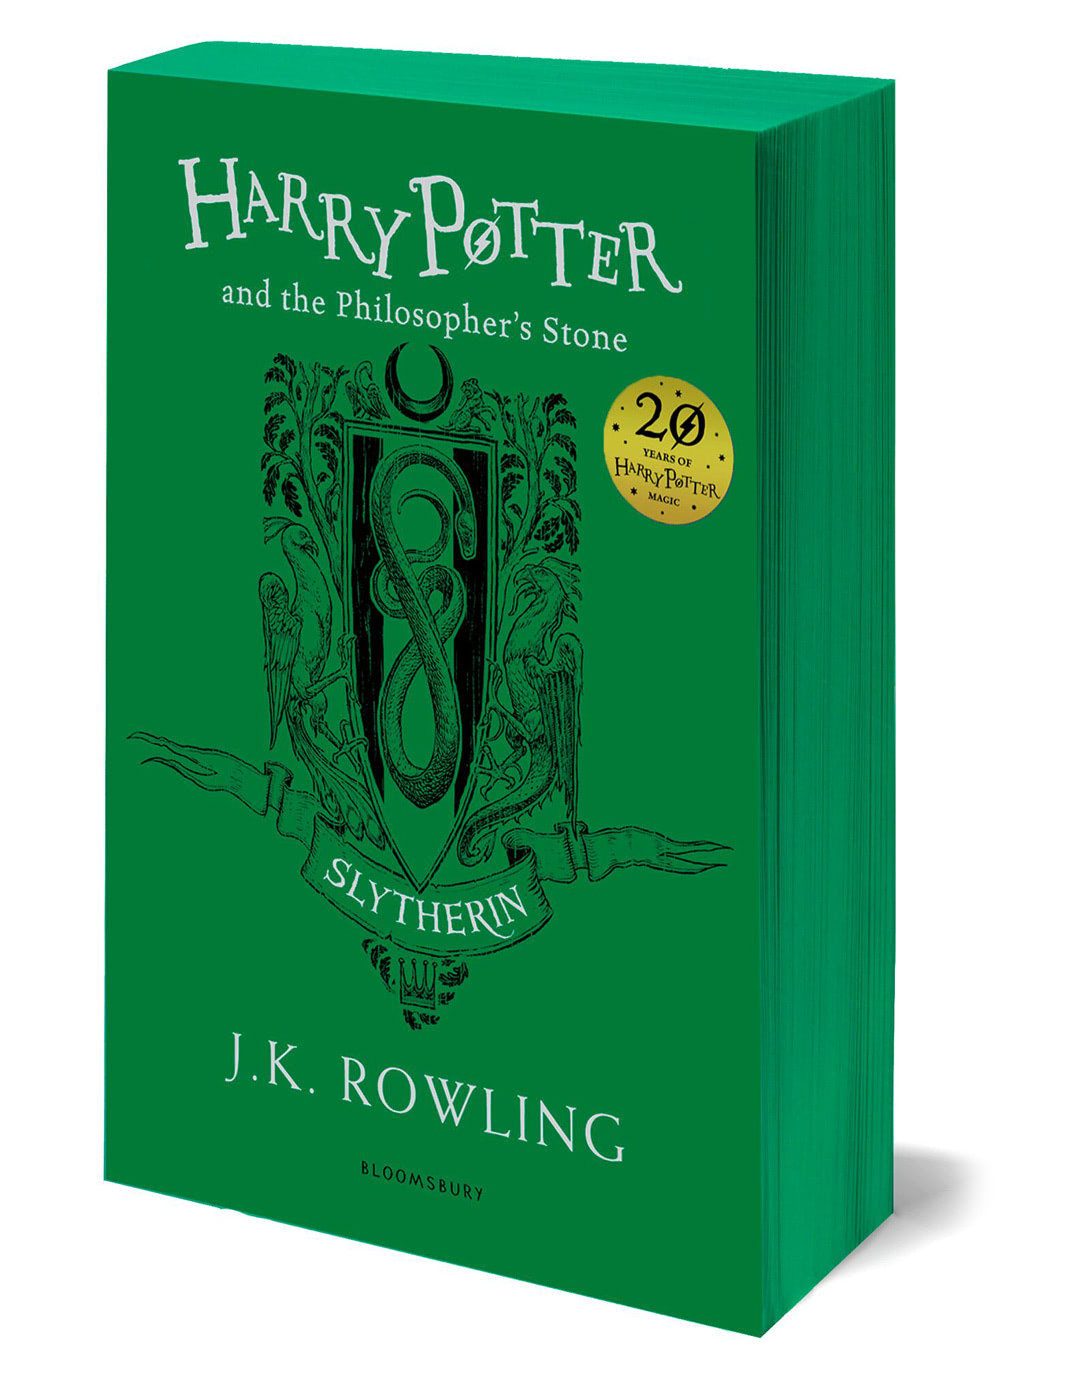 'Philosopher's Stone' house edition (Slytherin) (paperback)